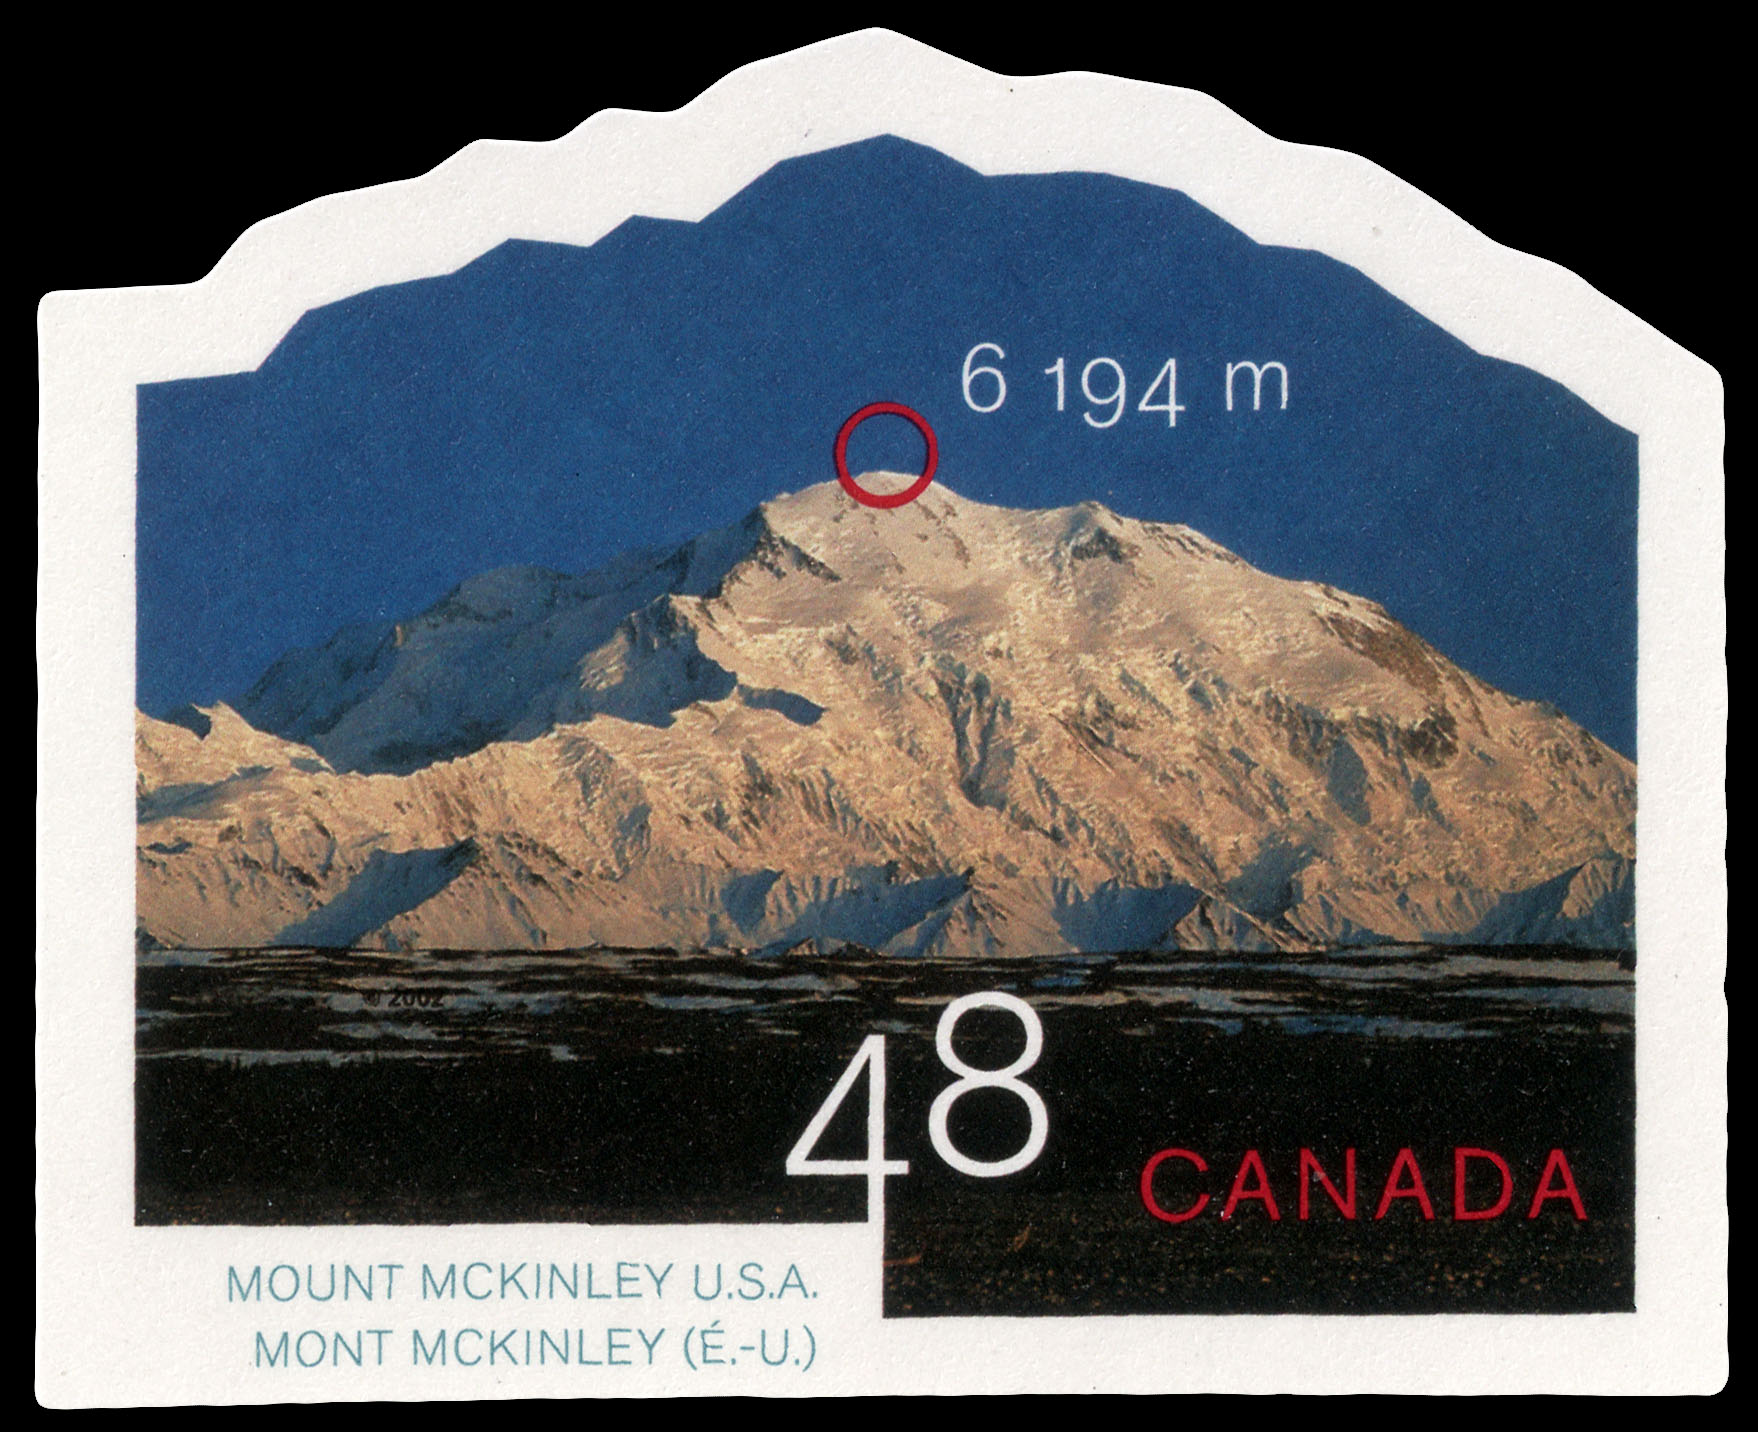 Mount McKinley, United States, 6,194 m Canada Postage Stamp | Mountains